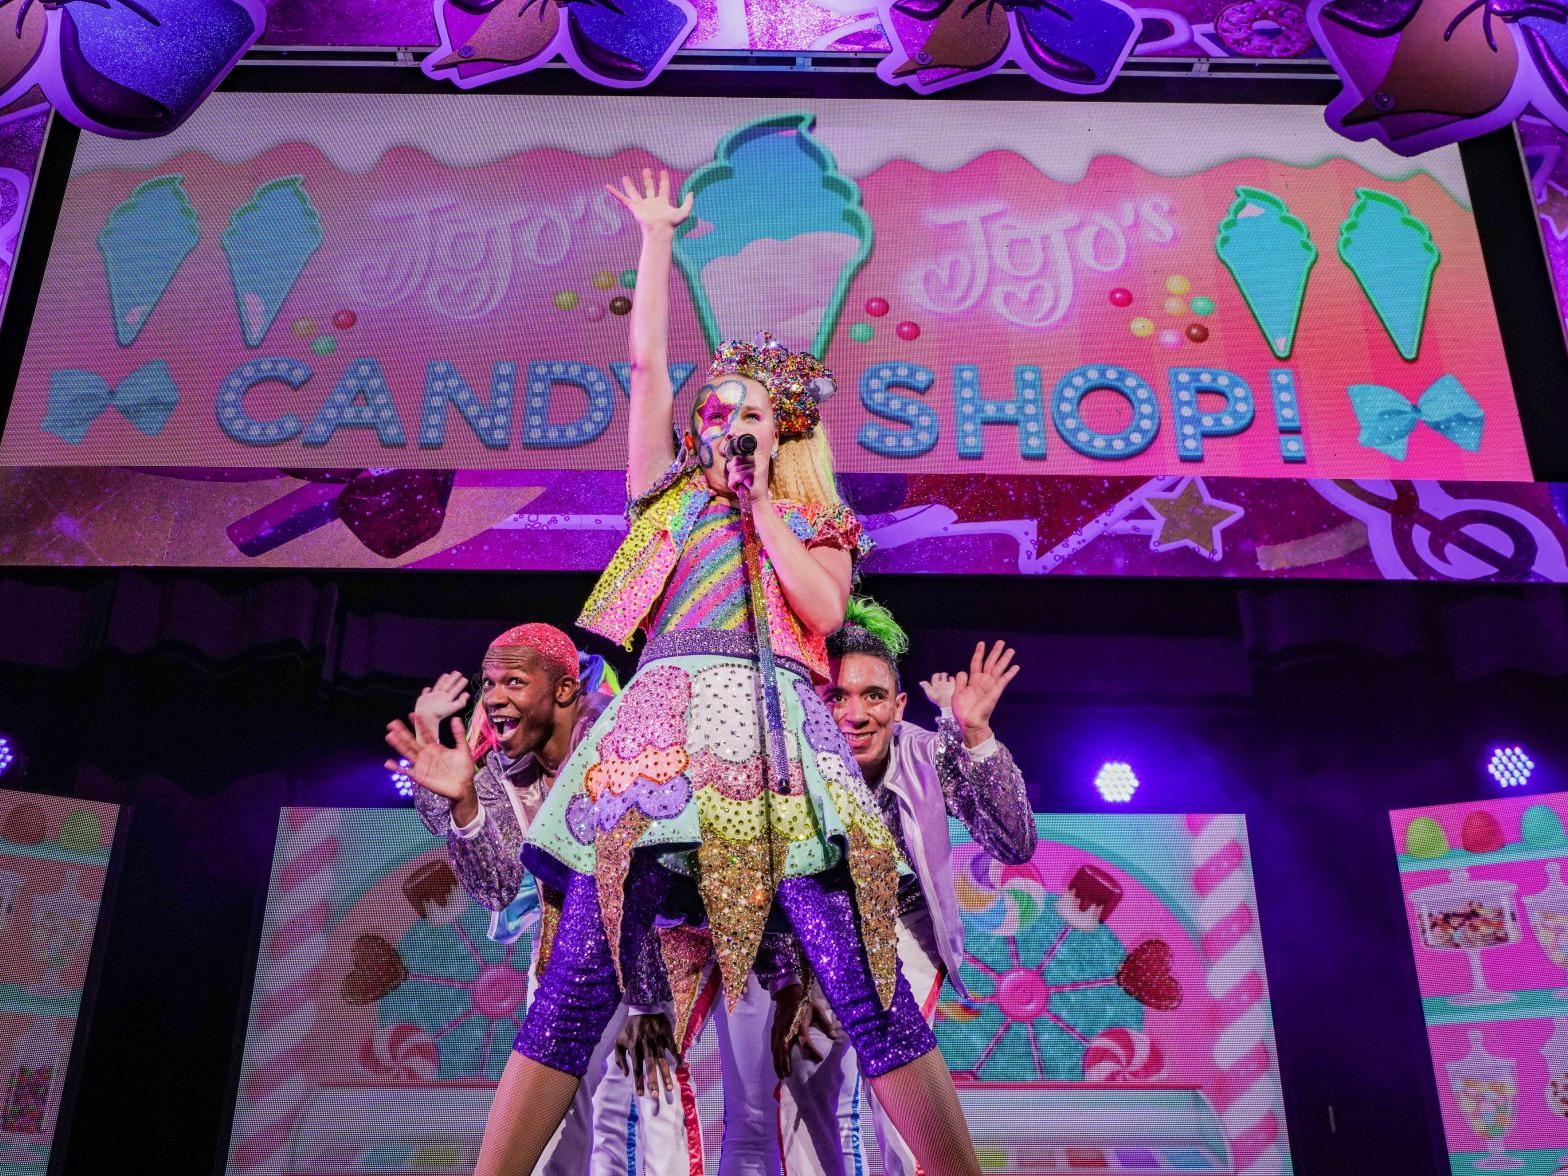 Youtube Star Jojo Siwa In Colorado Springs And More Concerts To See Arts Entertainment Gazette Com